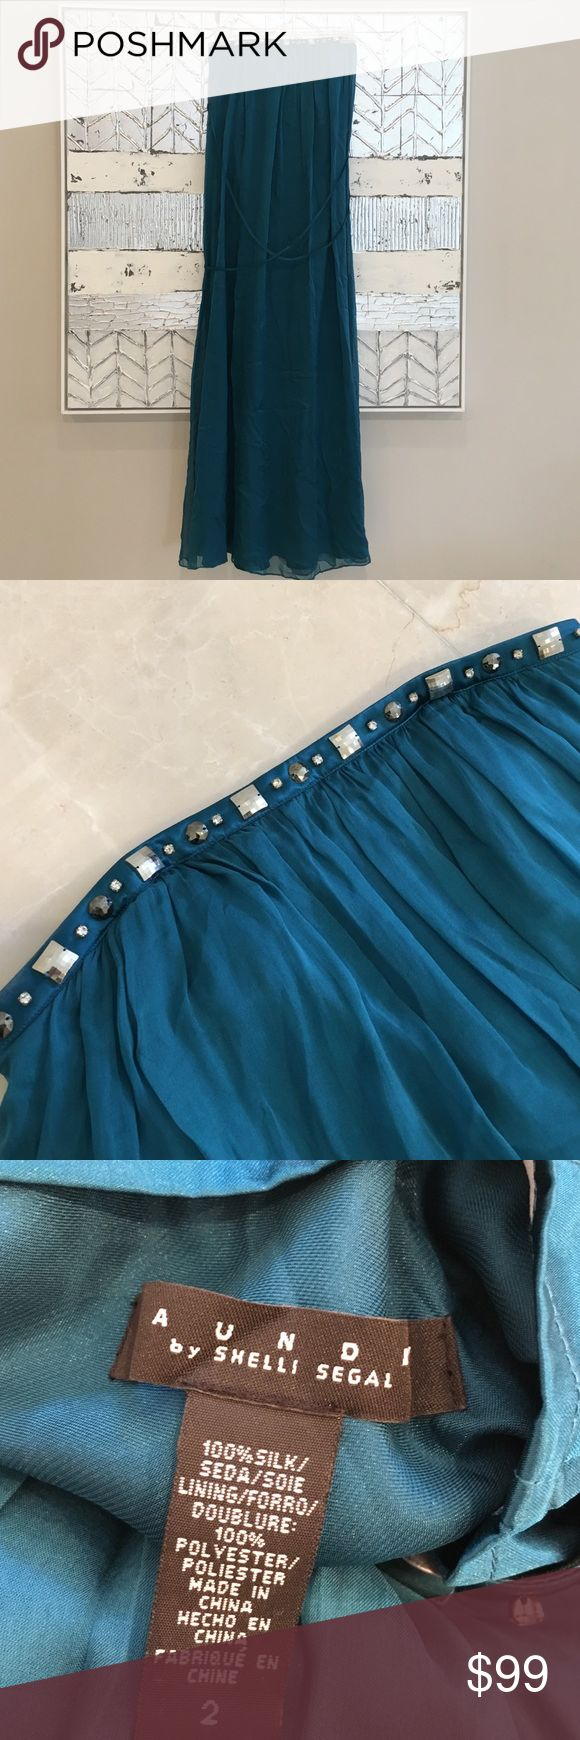 LAUNDRY by Shelli Segal Silk Dress LAUNDRY by Shelli Segal Silk Dress. Used only once for a wedding. Dark Aqua/Teal color. Laundry by Shelli Segal Dresses Strapless